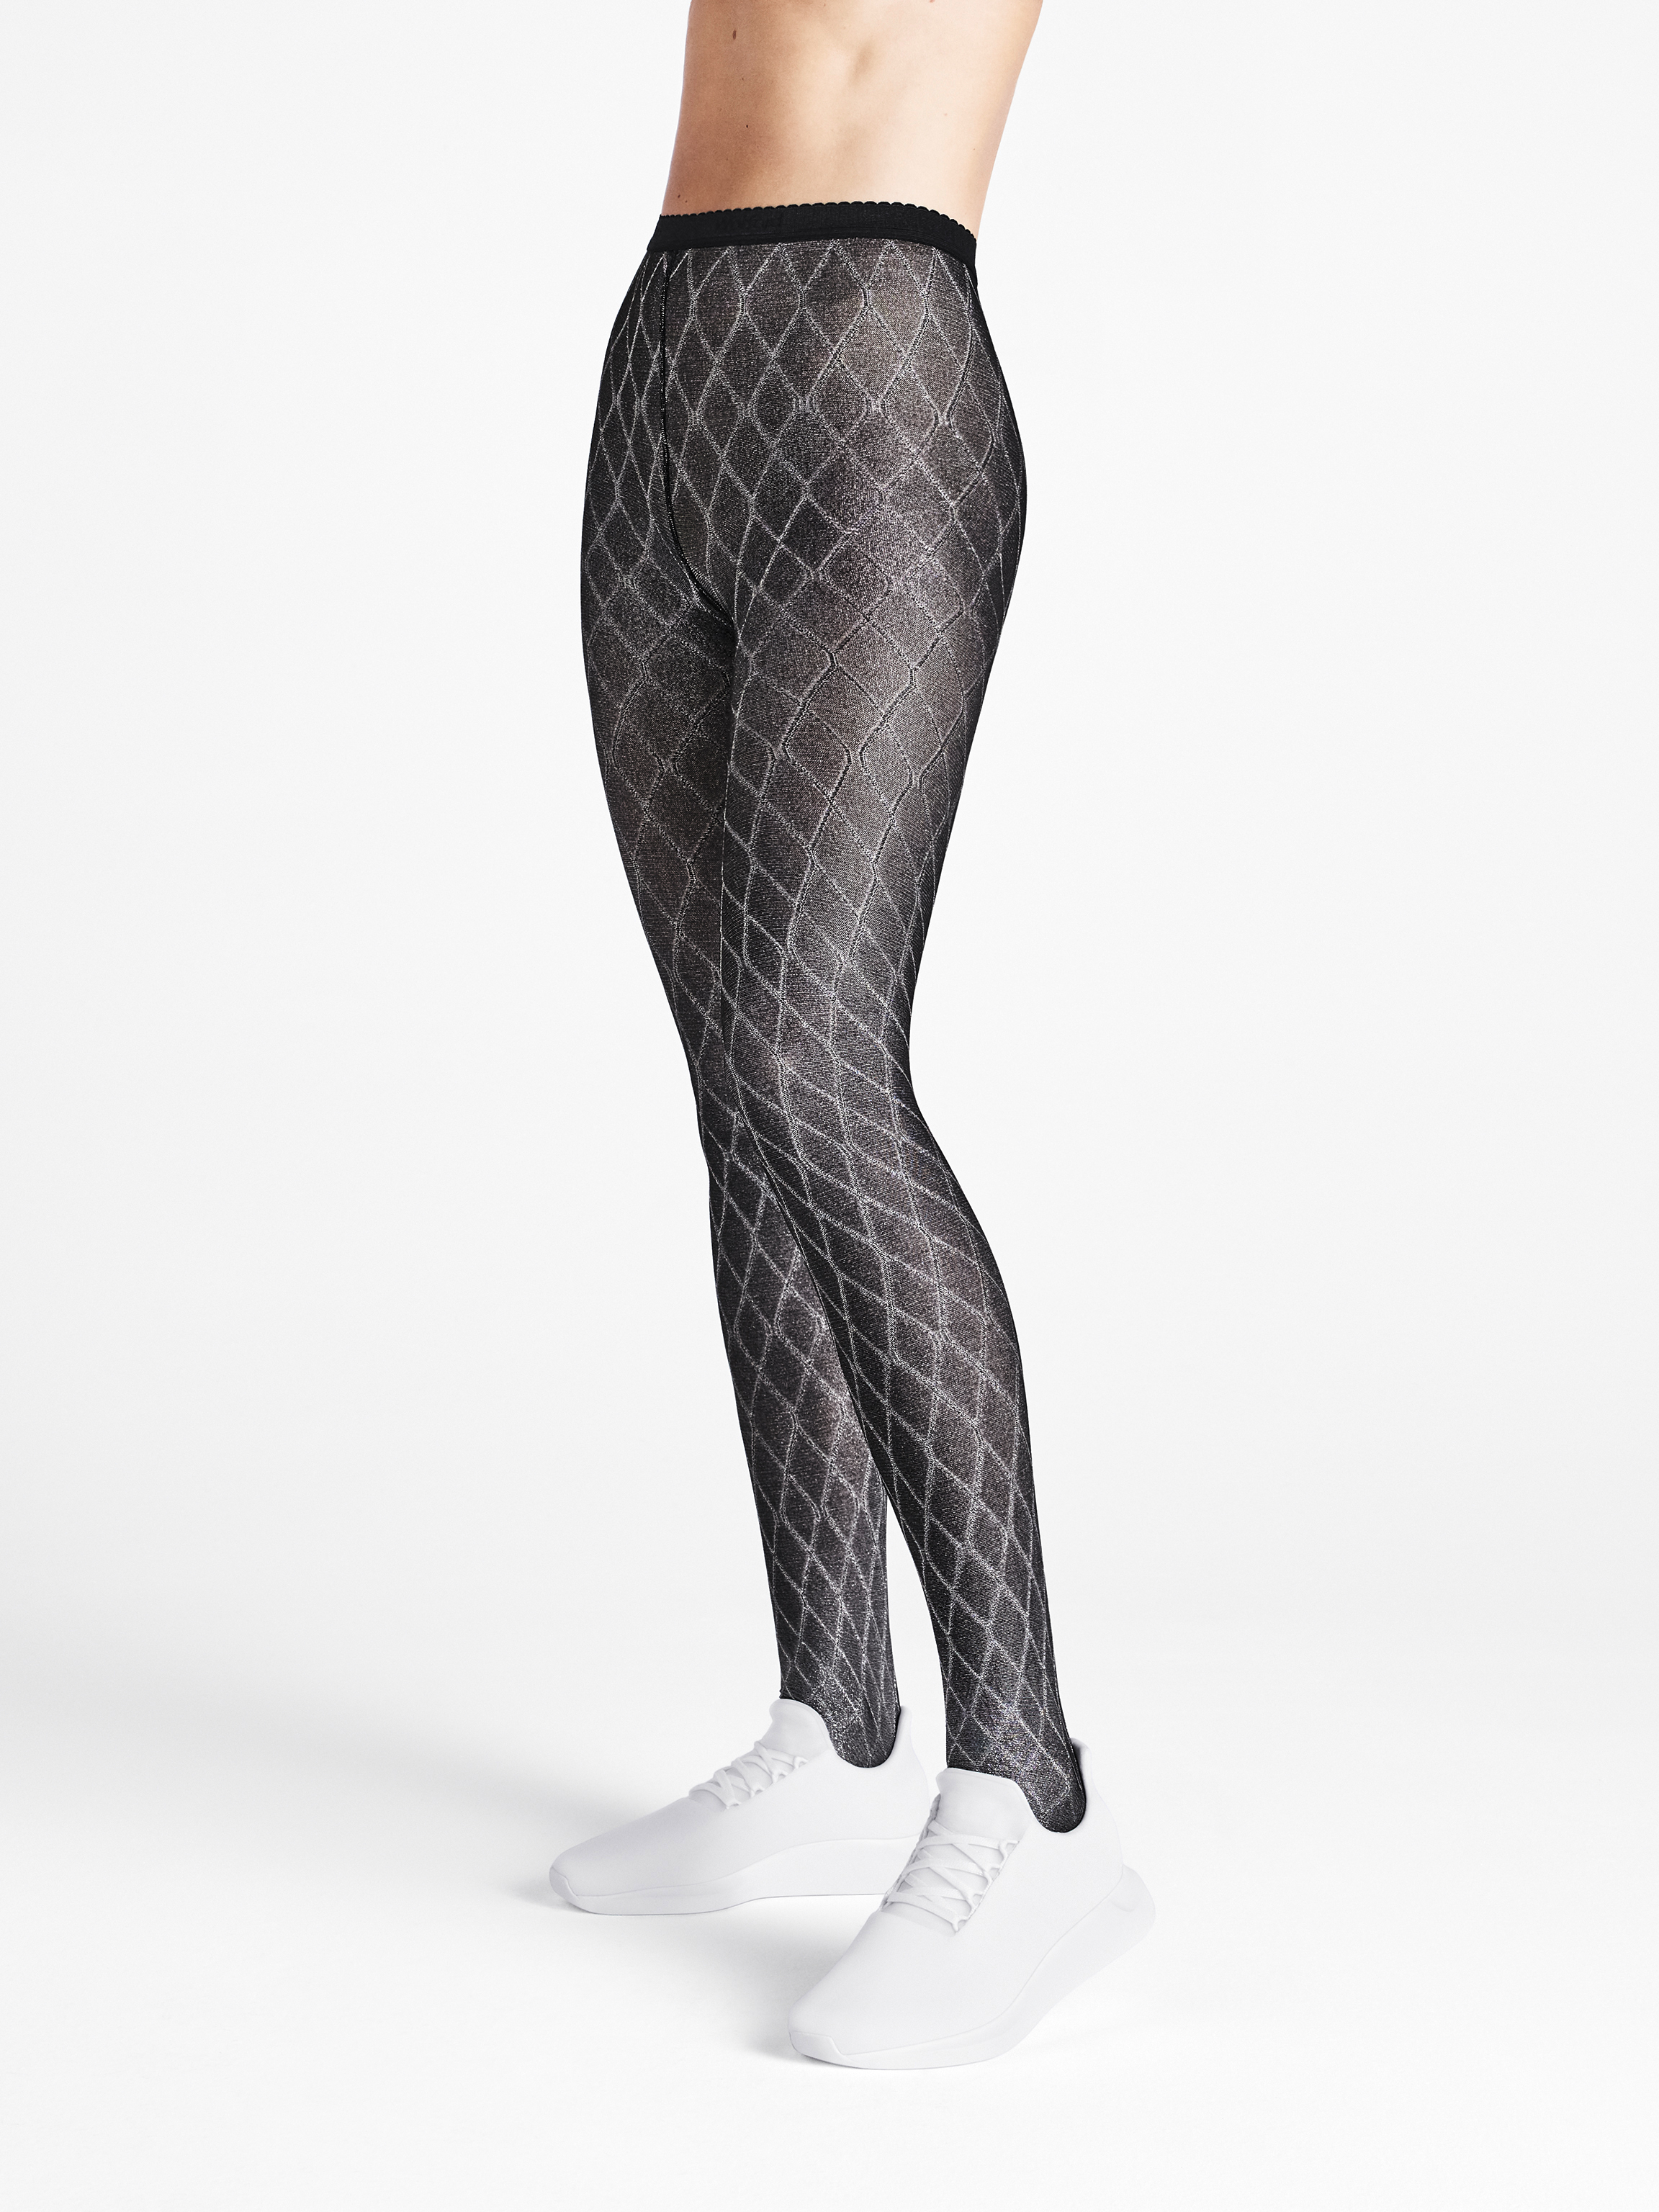 Crystal Blaze Tights